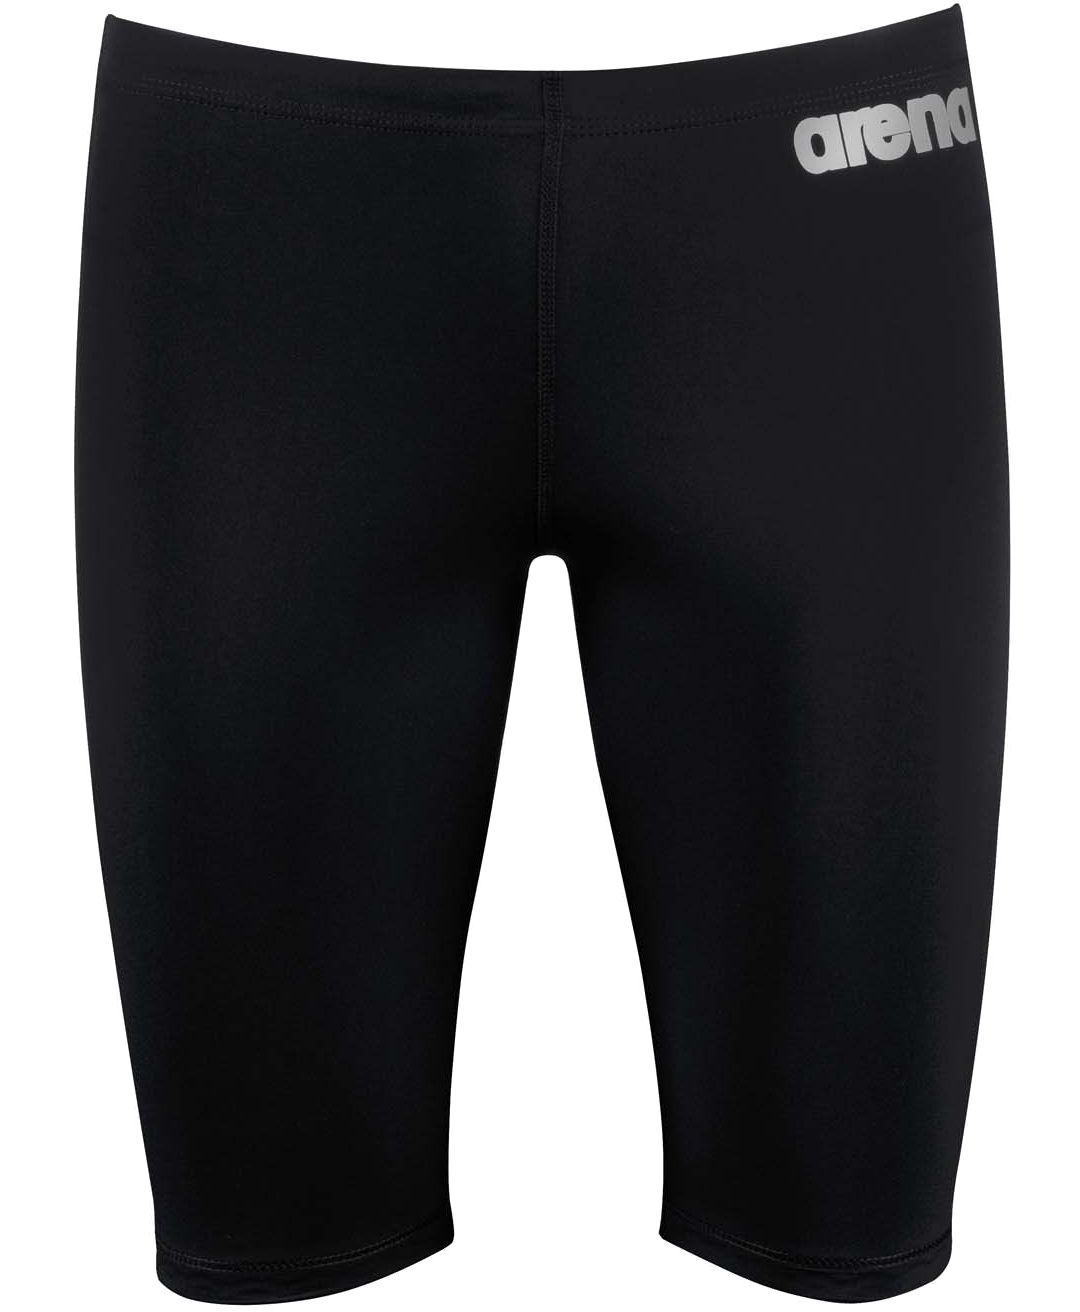 54c89a9c4a arena Men's Powerskin ST Jammer | DICK'S Sporting Goods